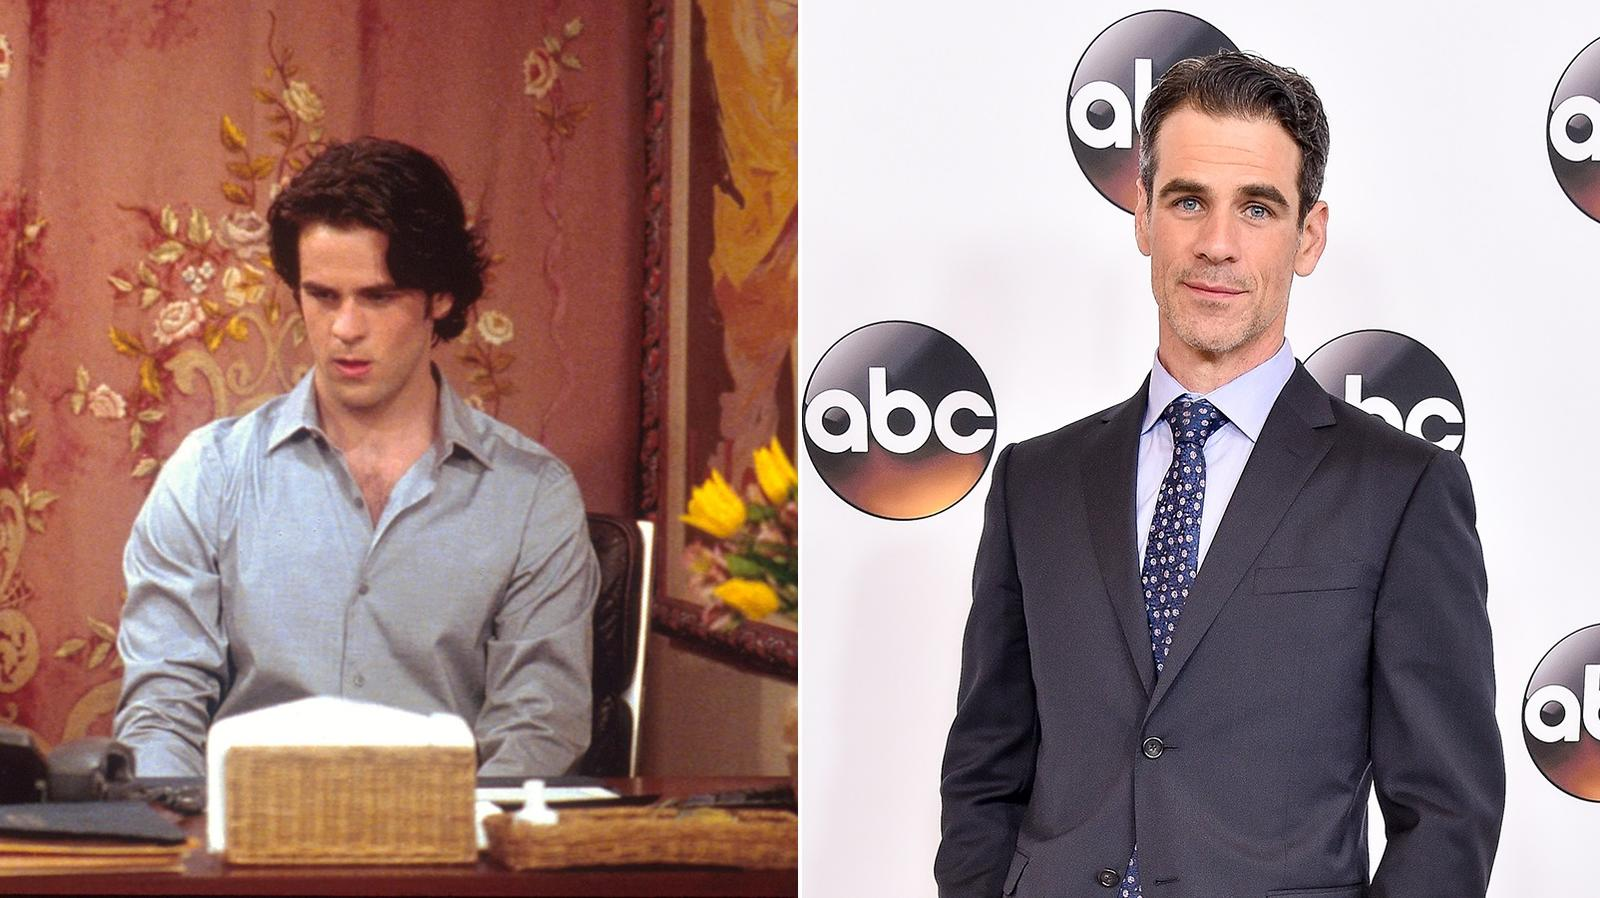 Eddie Cahill (Bright/Kauffman/Crane Productions / Getty Images)